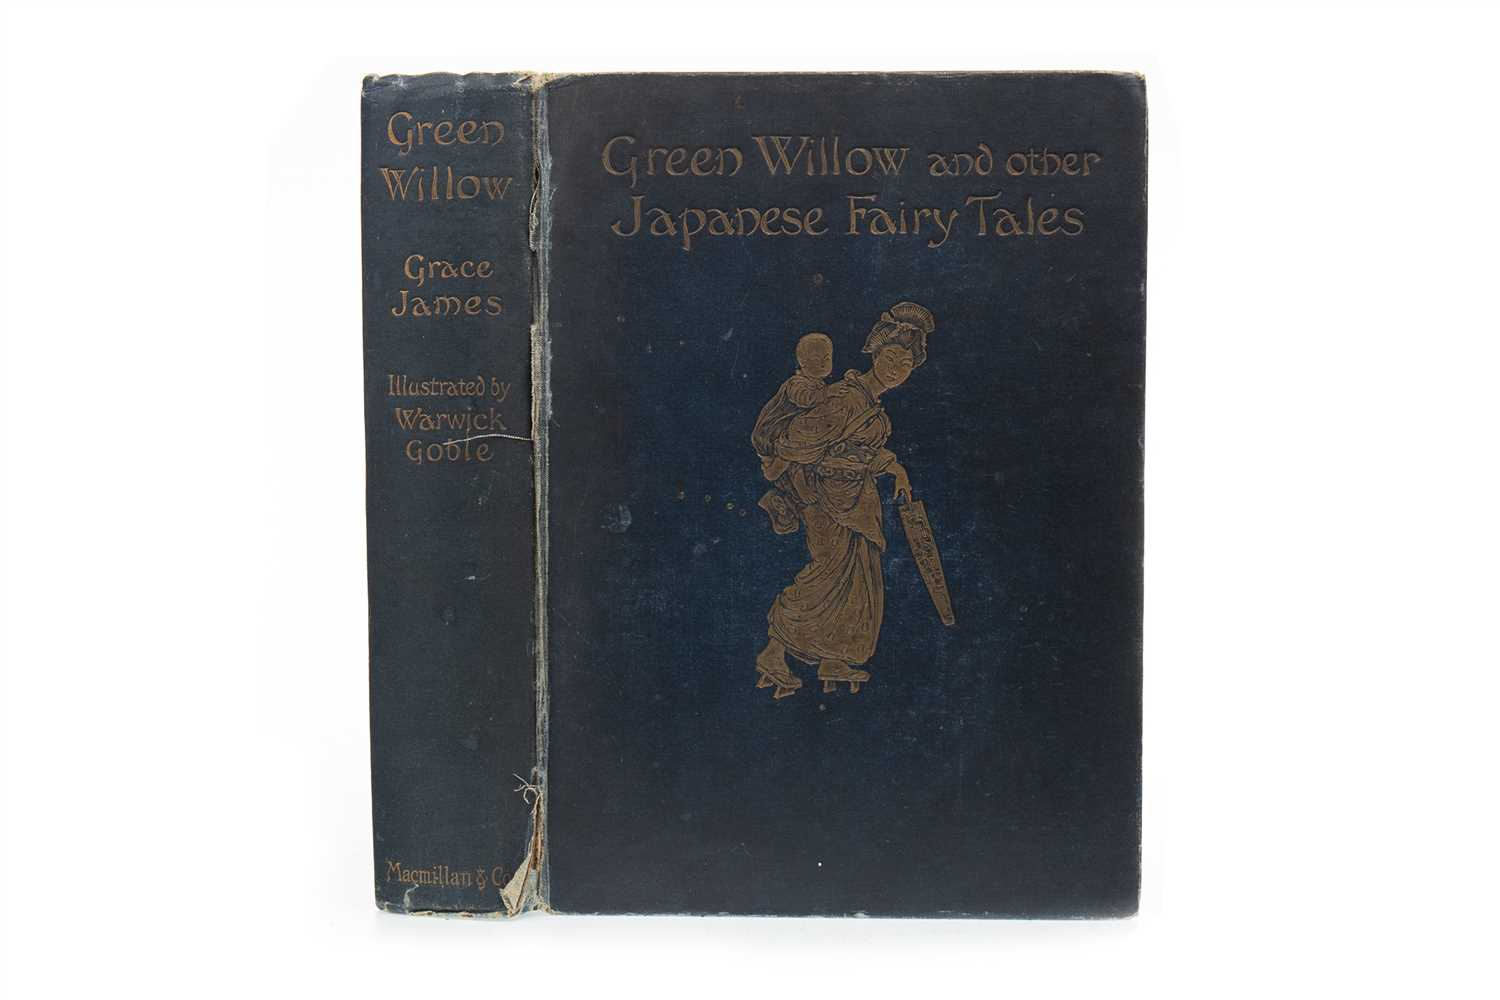 Lot 1624-A FIRST EDITION COPY OF GREEN WILLOW AND OTHER JAPANESE FAIRY STORIES BY GRACE JAMES